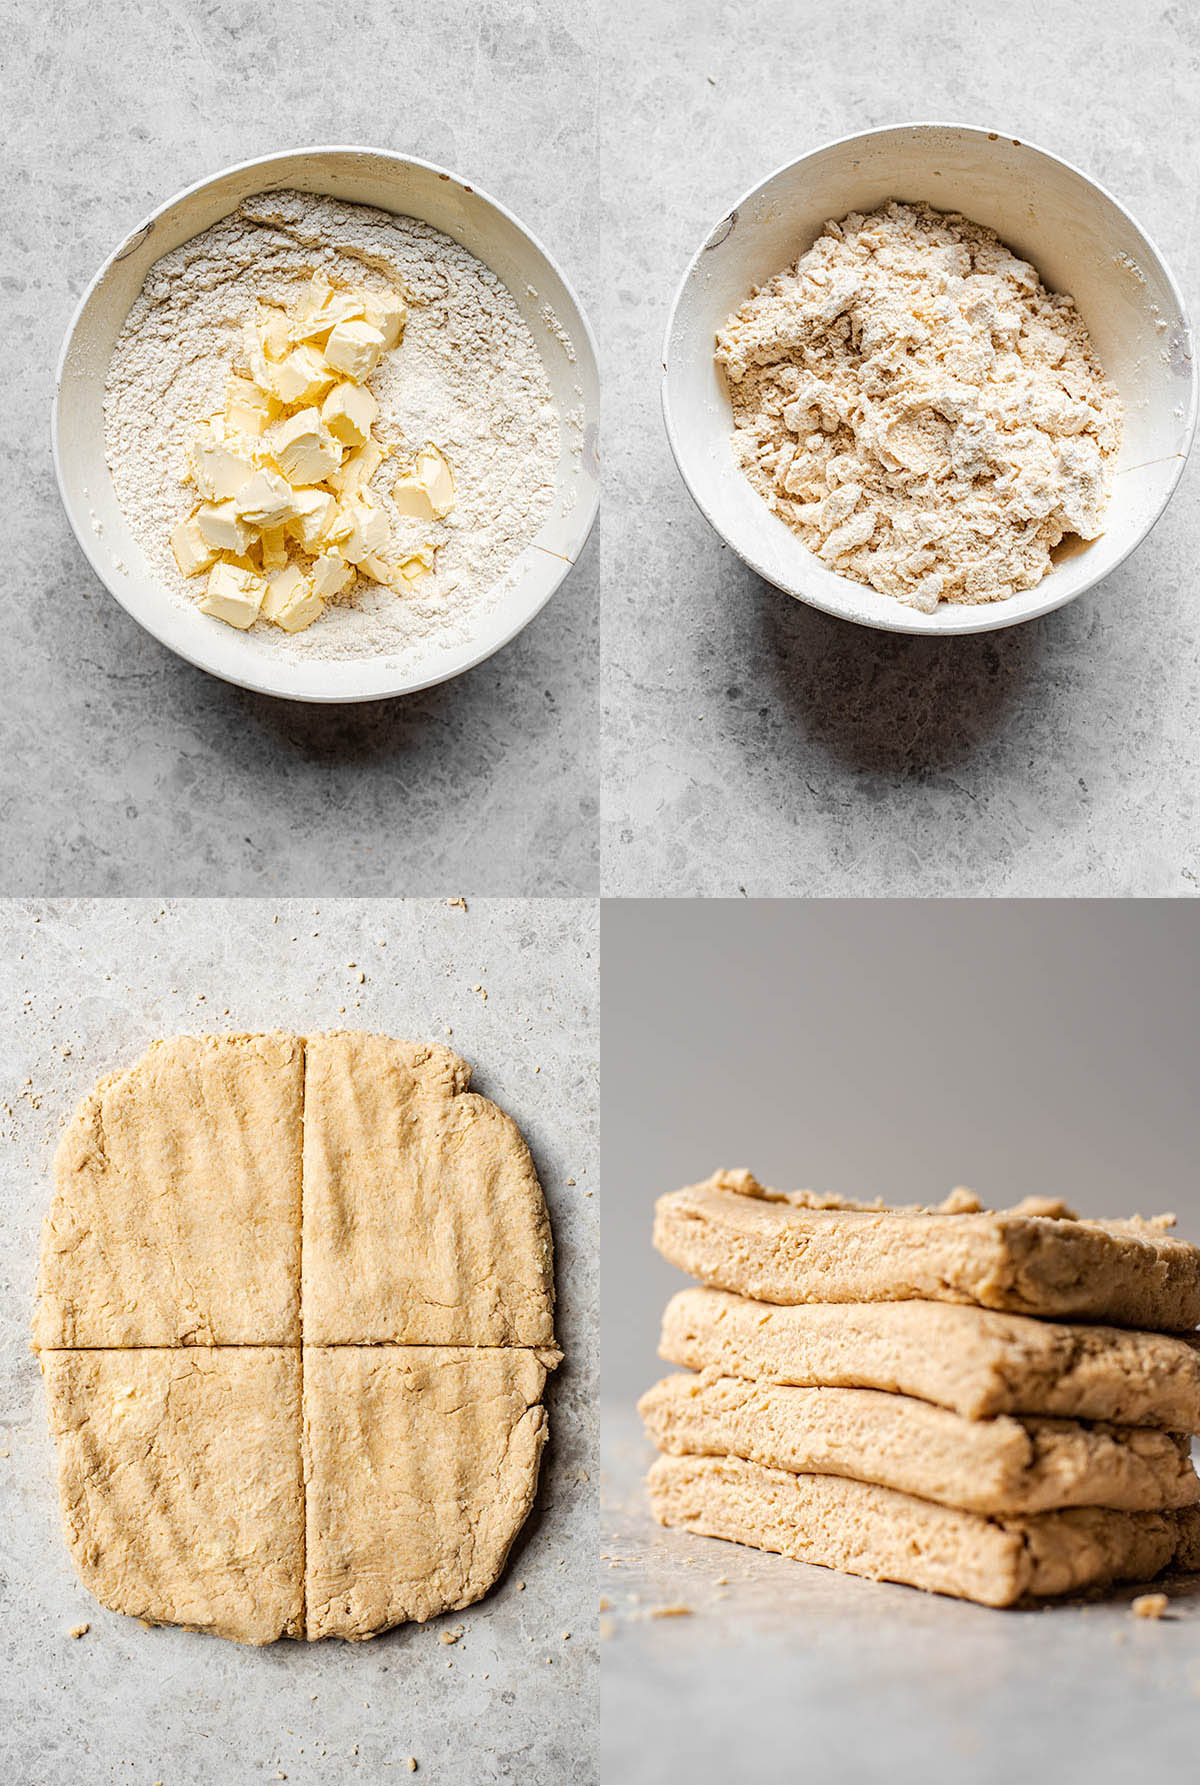 Sourdough biscuit steps: mixing butter into dry ingredients, cutting the dough into four, and pressing the squares on top of each other.